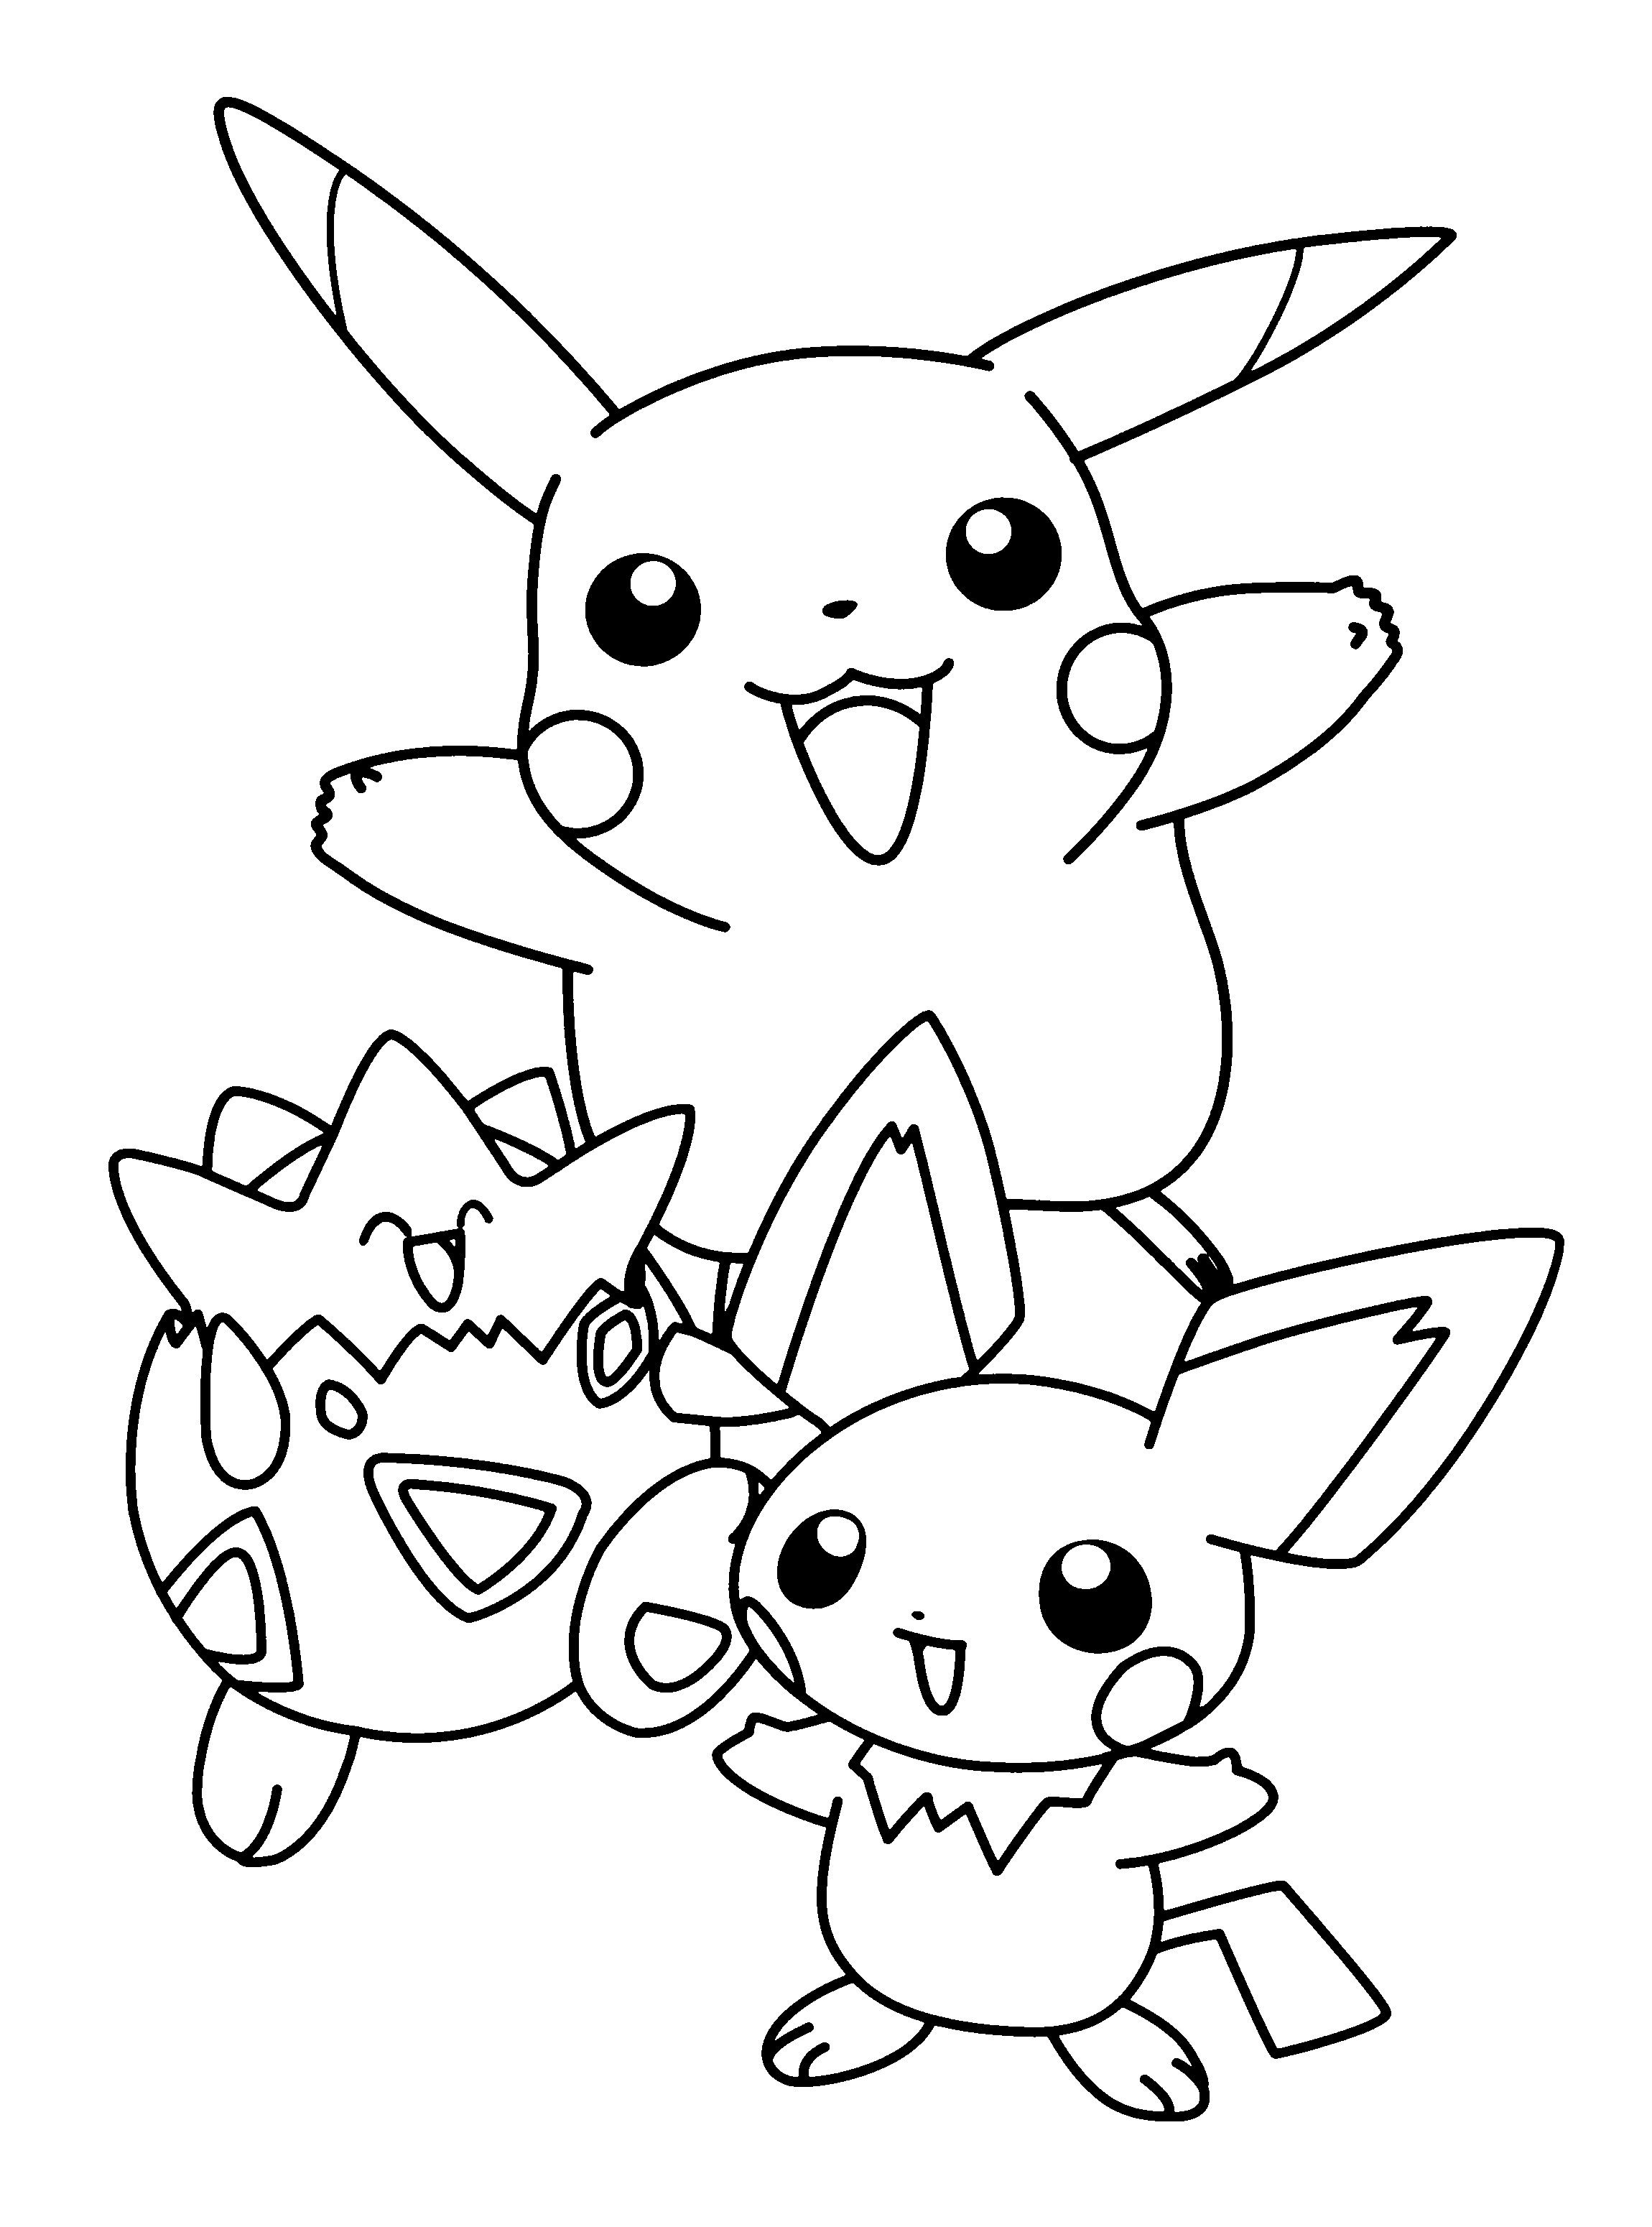 Free Printable Detective Pikachu Coloring Pages